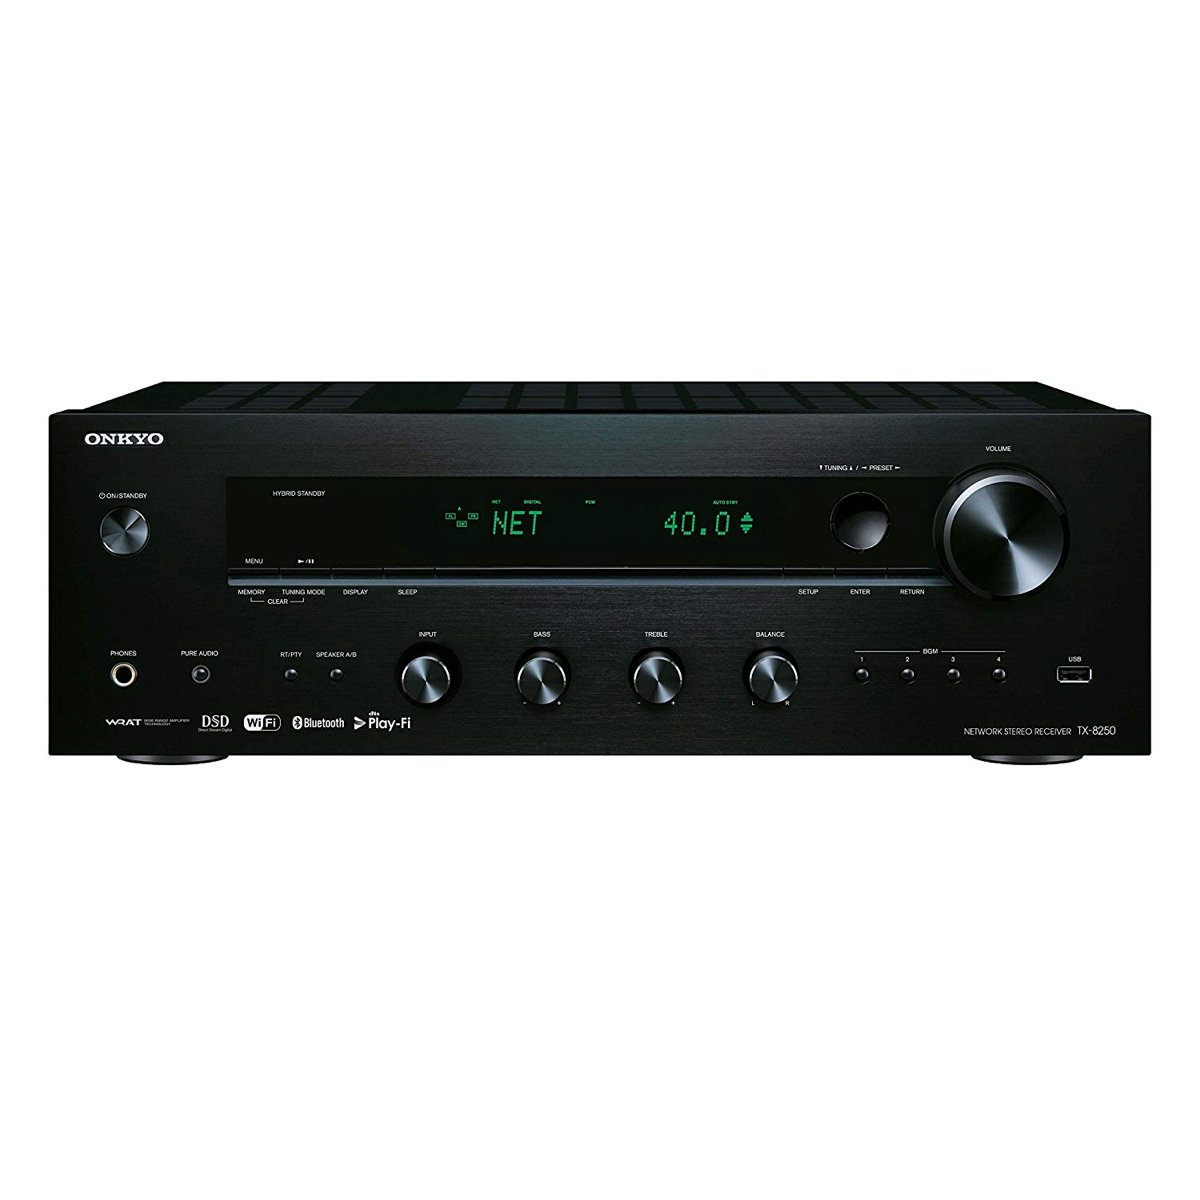 Onkyo TX-8250 (Integrated Stereo Amplifier) - AVStore.in